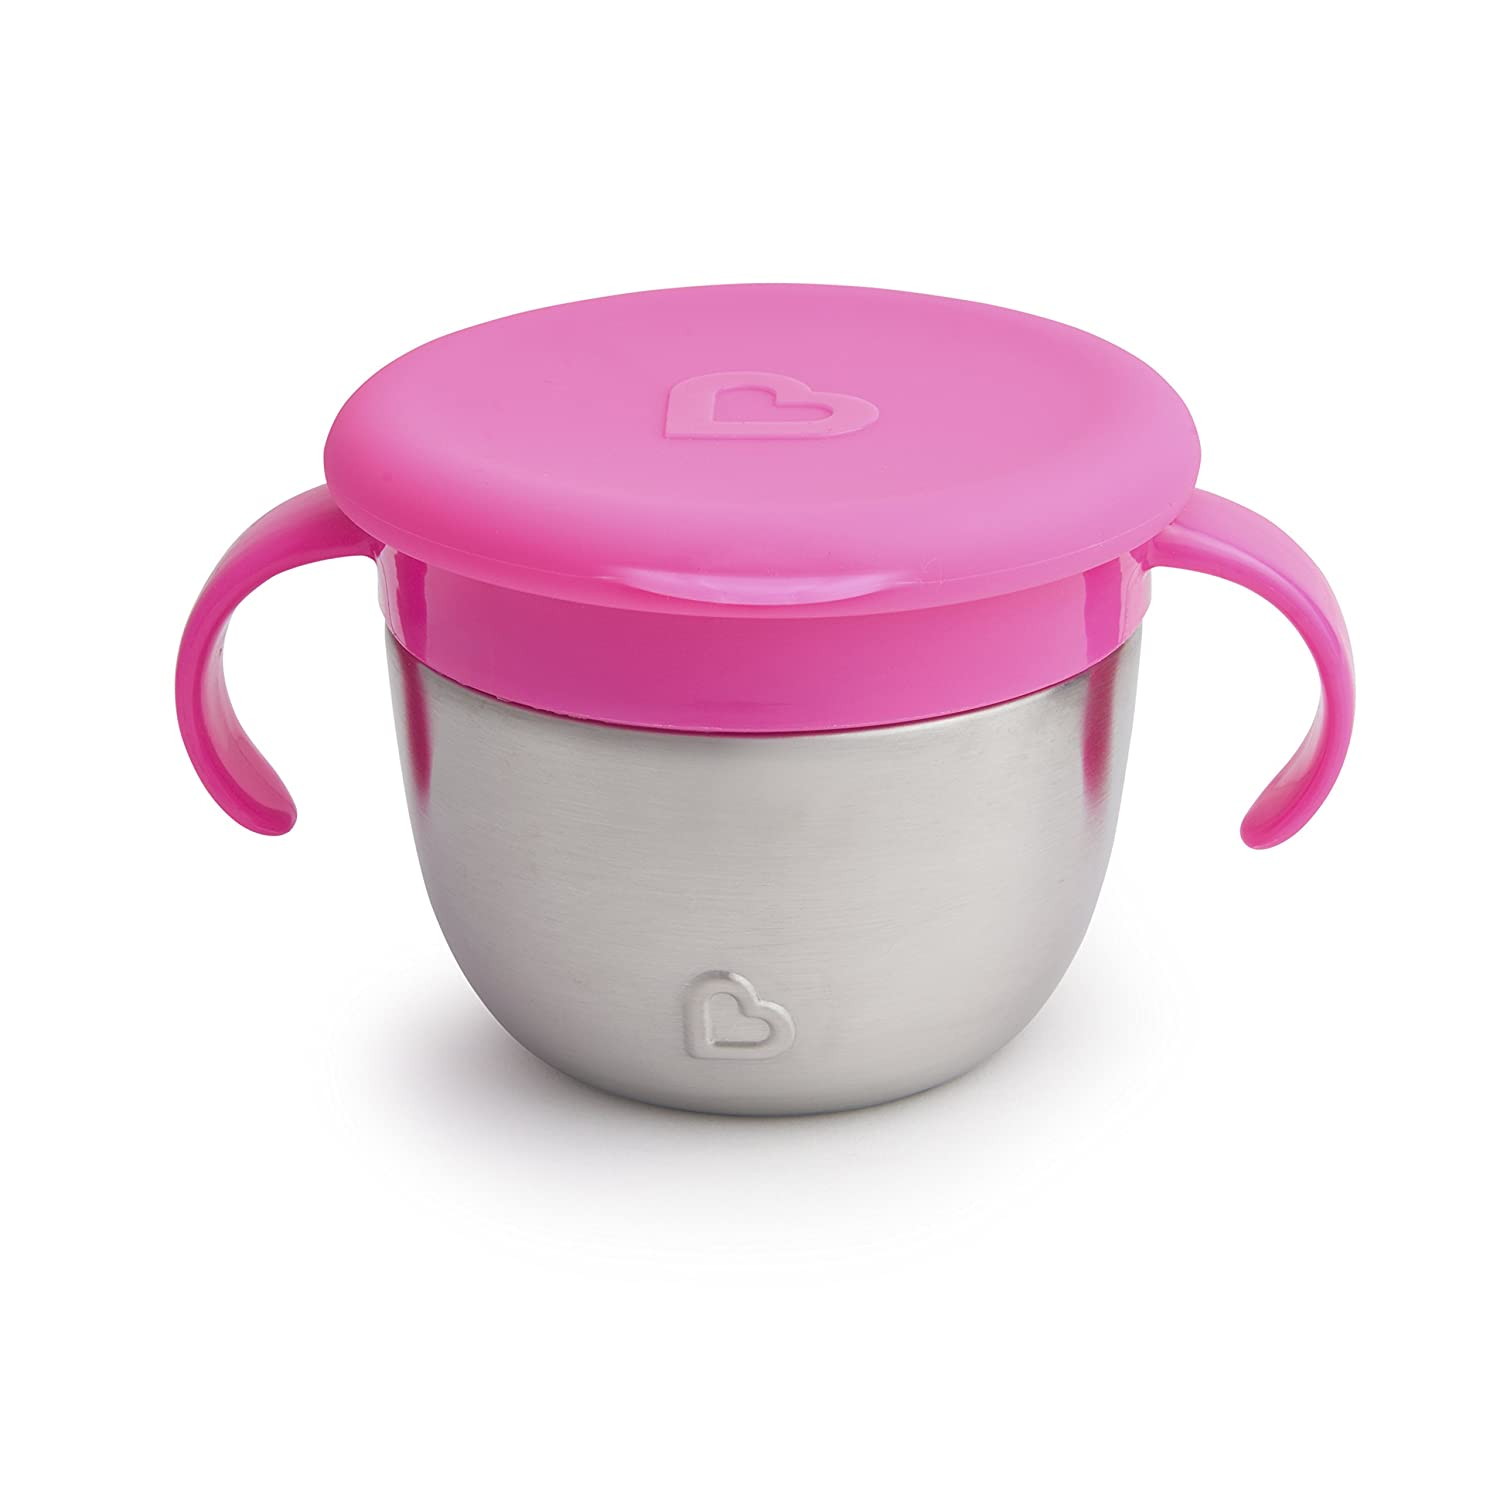 Munchkin Snack Plus Stainless Steel Snack Catcher, Pink 17066